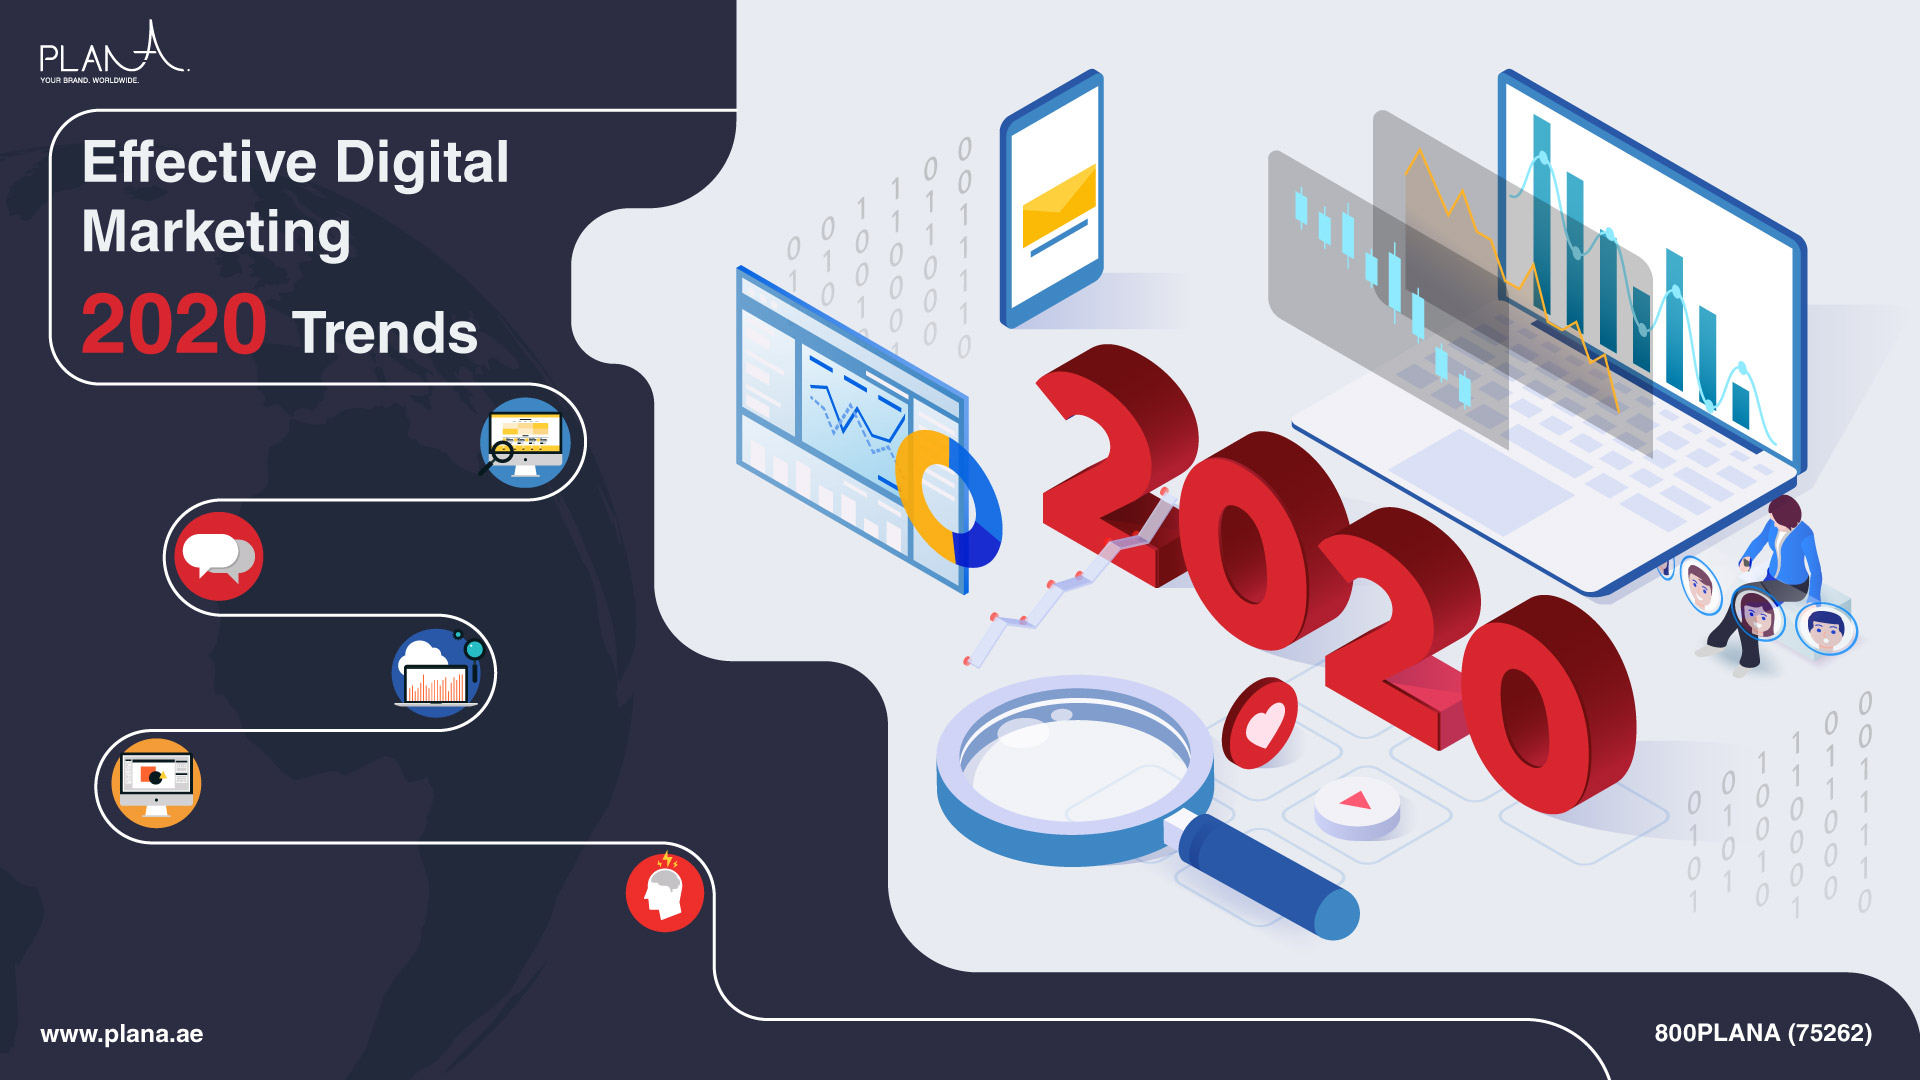 Effective Digital Marketing Trends You Can't Miss in 2020